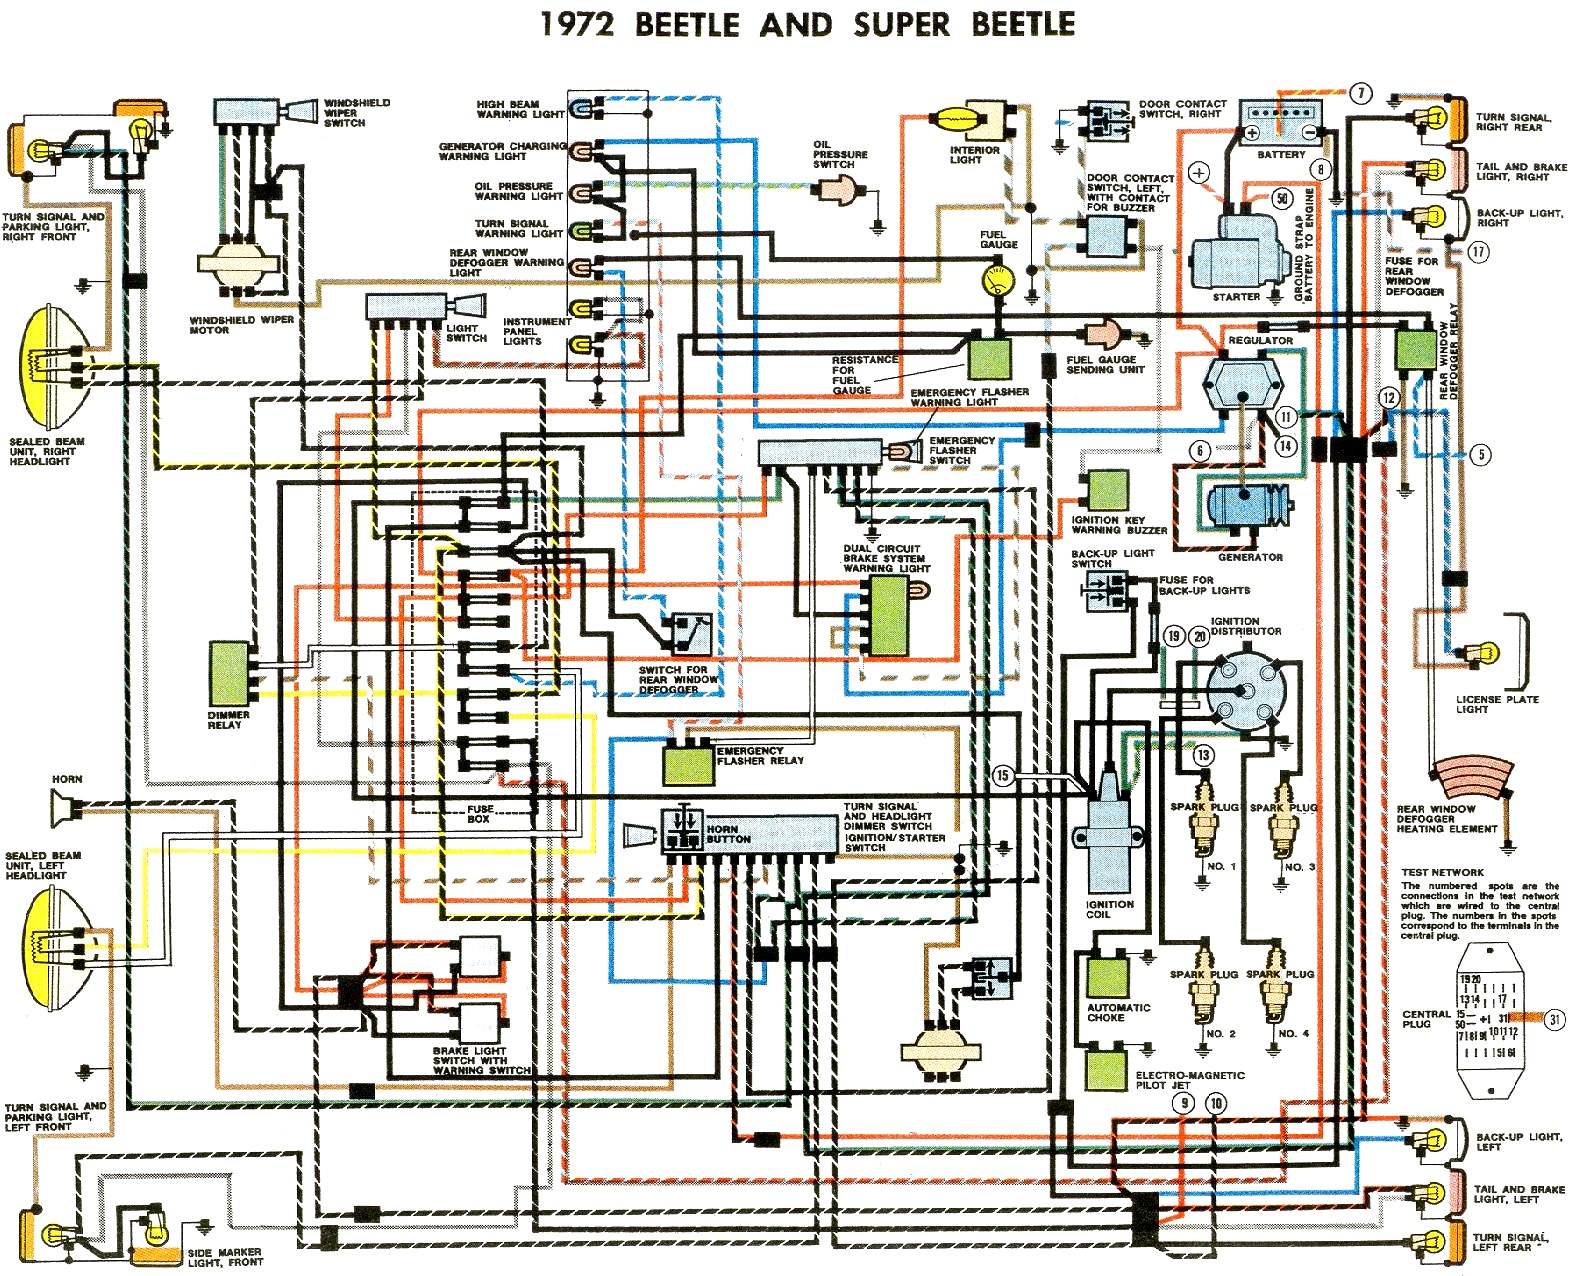 bug_72 vw mk1 wiring diagram 56 vw bug wiring diagram \u2022 wiring diagrams 1973 vw super beetle wiring harness at creativeand.co